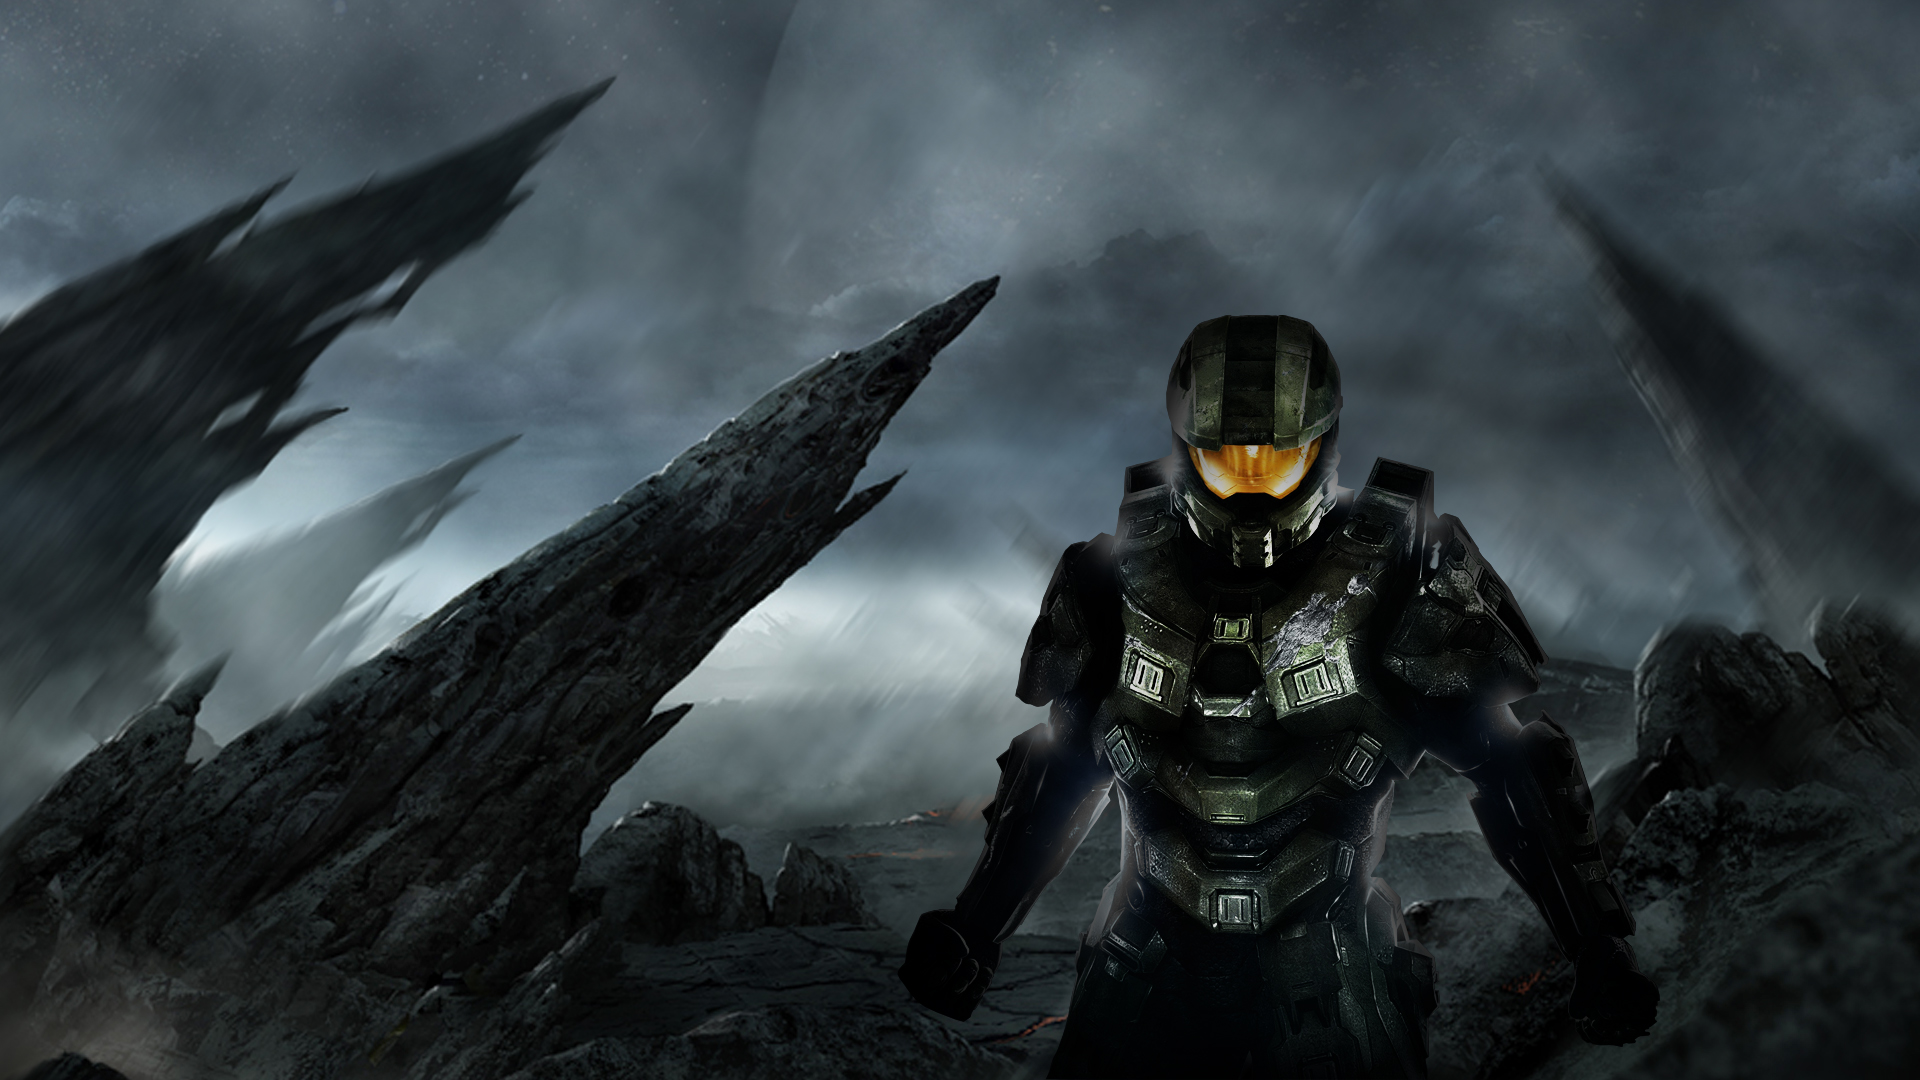 Halo Wallpaper by NIHILUSDESIGNS 1920x1080